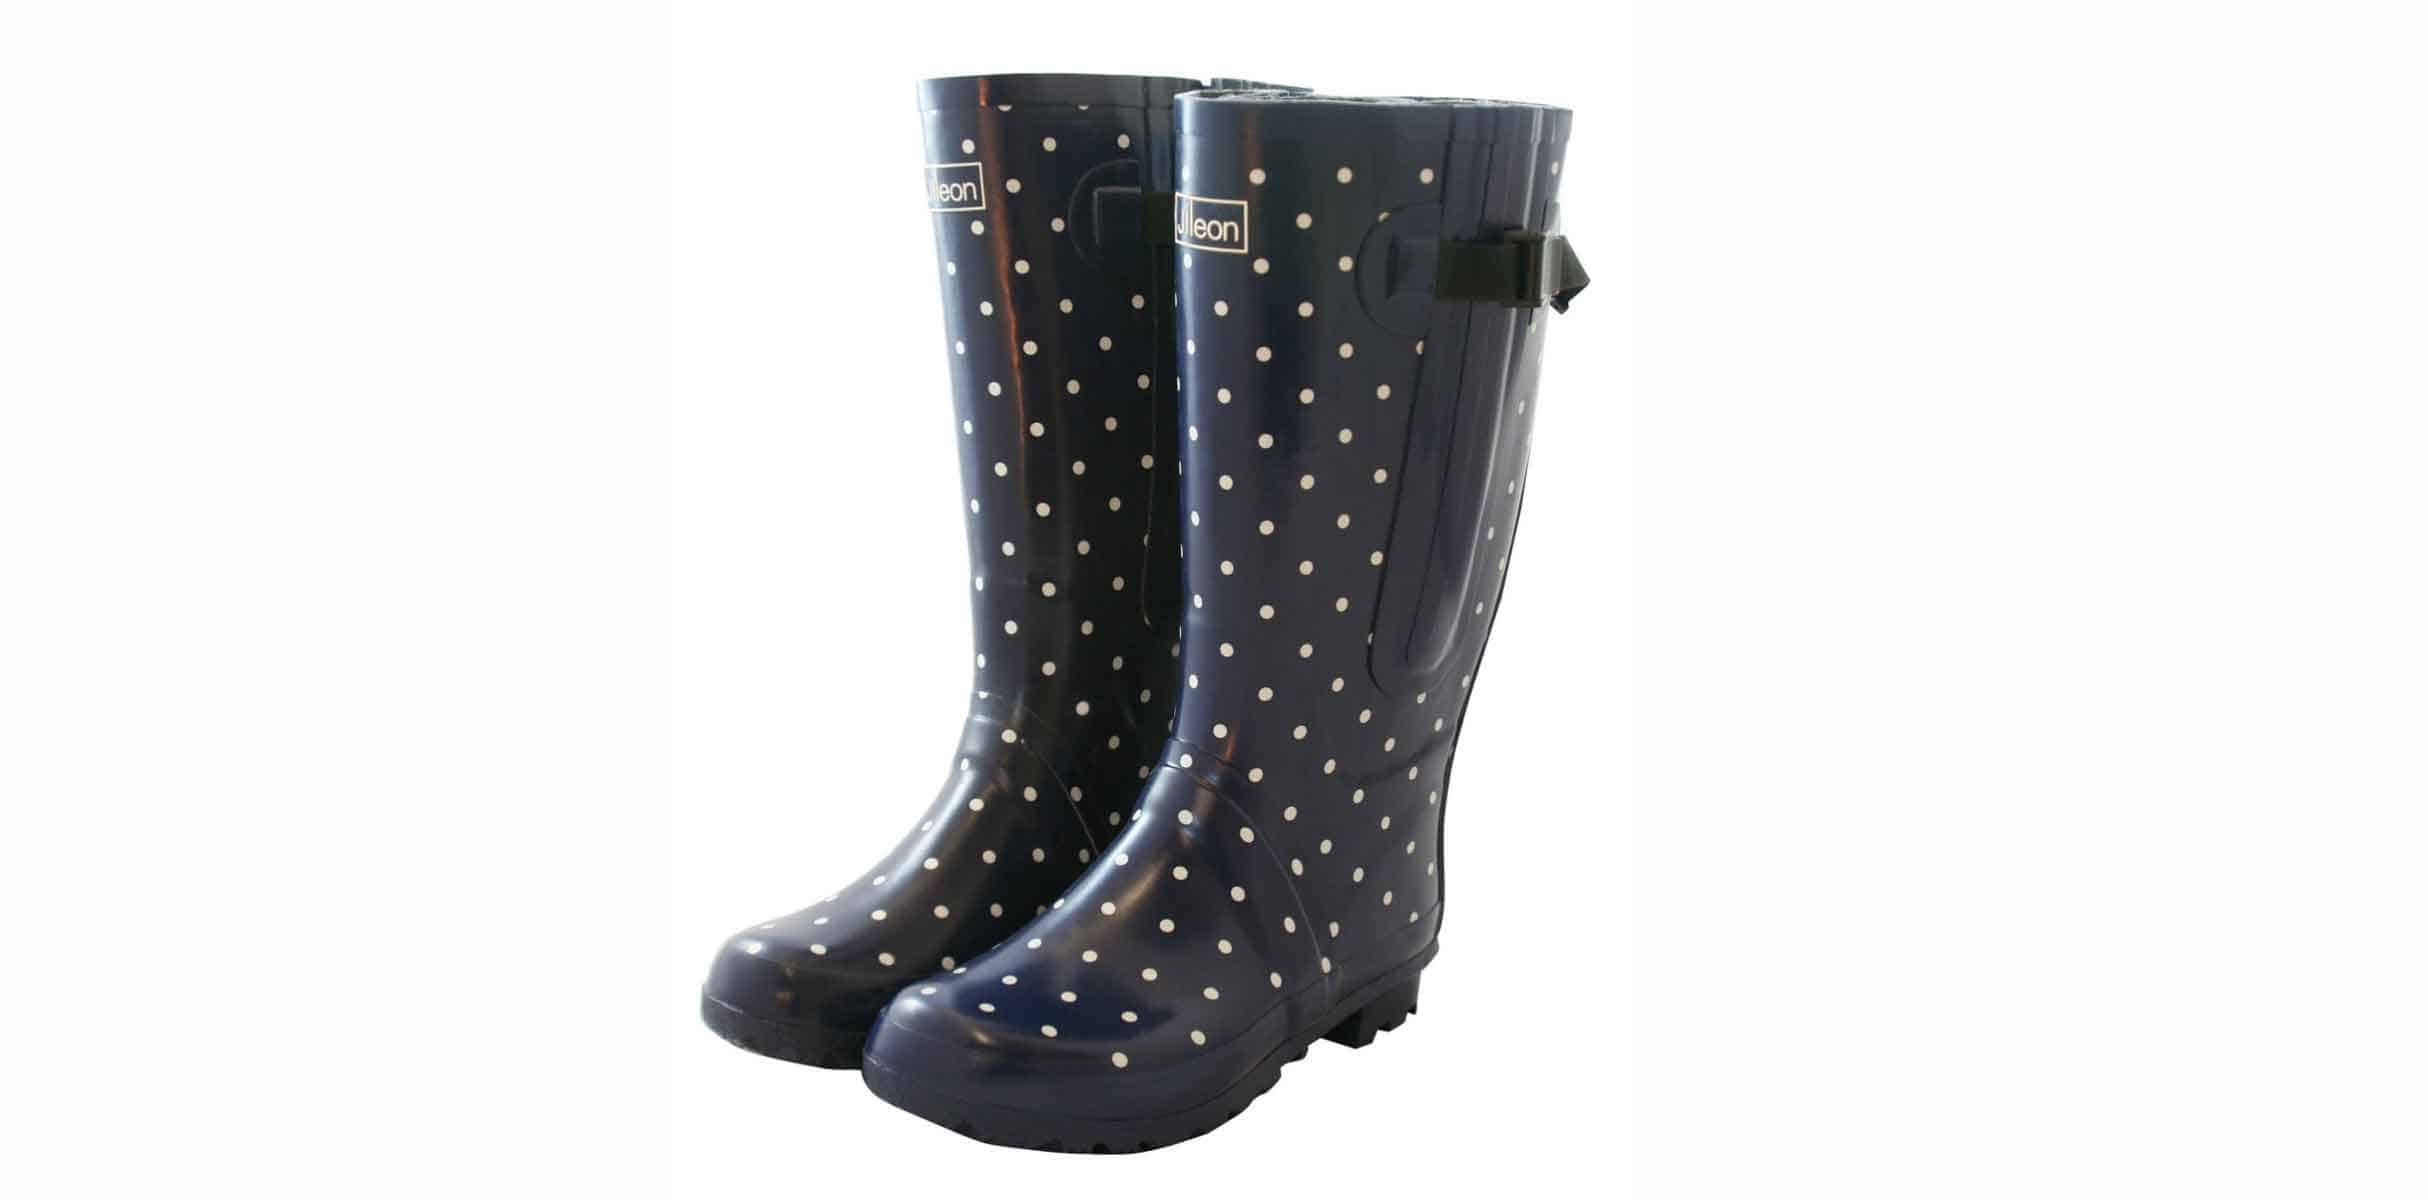 a80dd6347514 Wide Calf Wellies and Wide Fit Wellies - Many Styles - Yorkshire Wonders